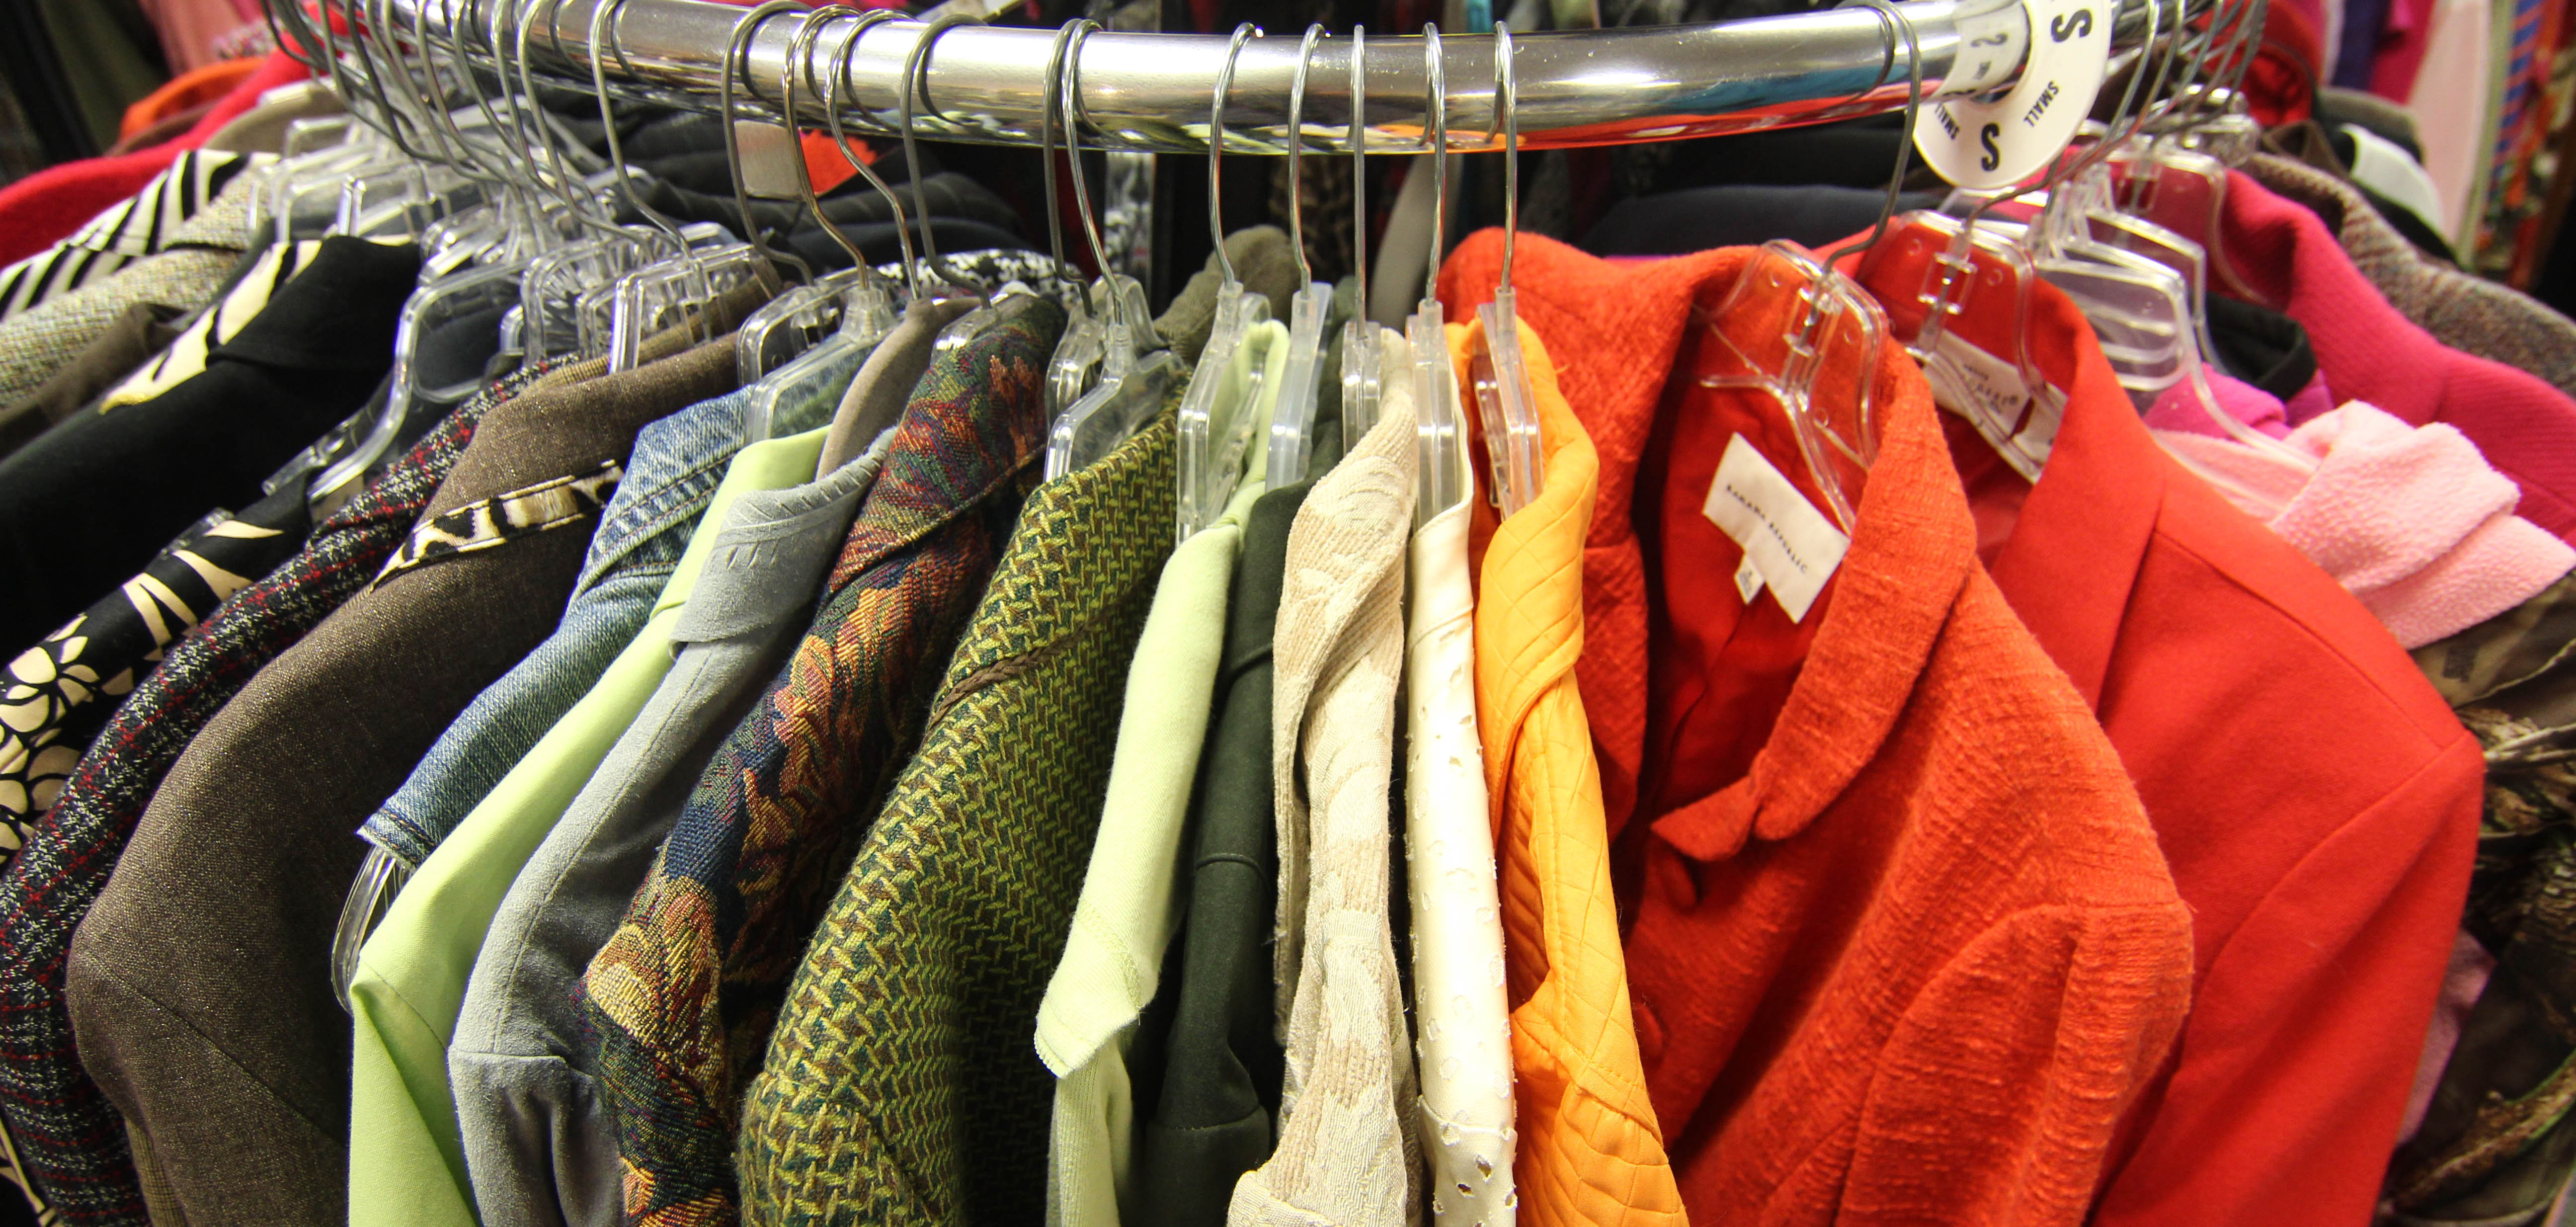 A rack of color-coded jackets at Bargains in Tulsa, Oklahoma.